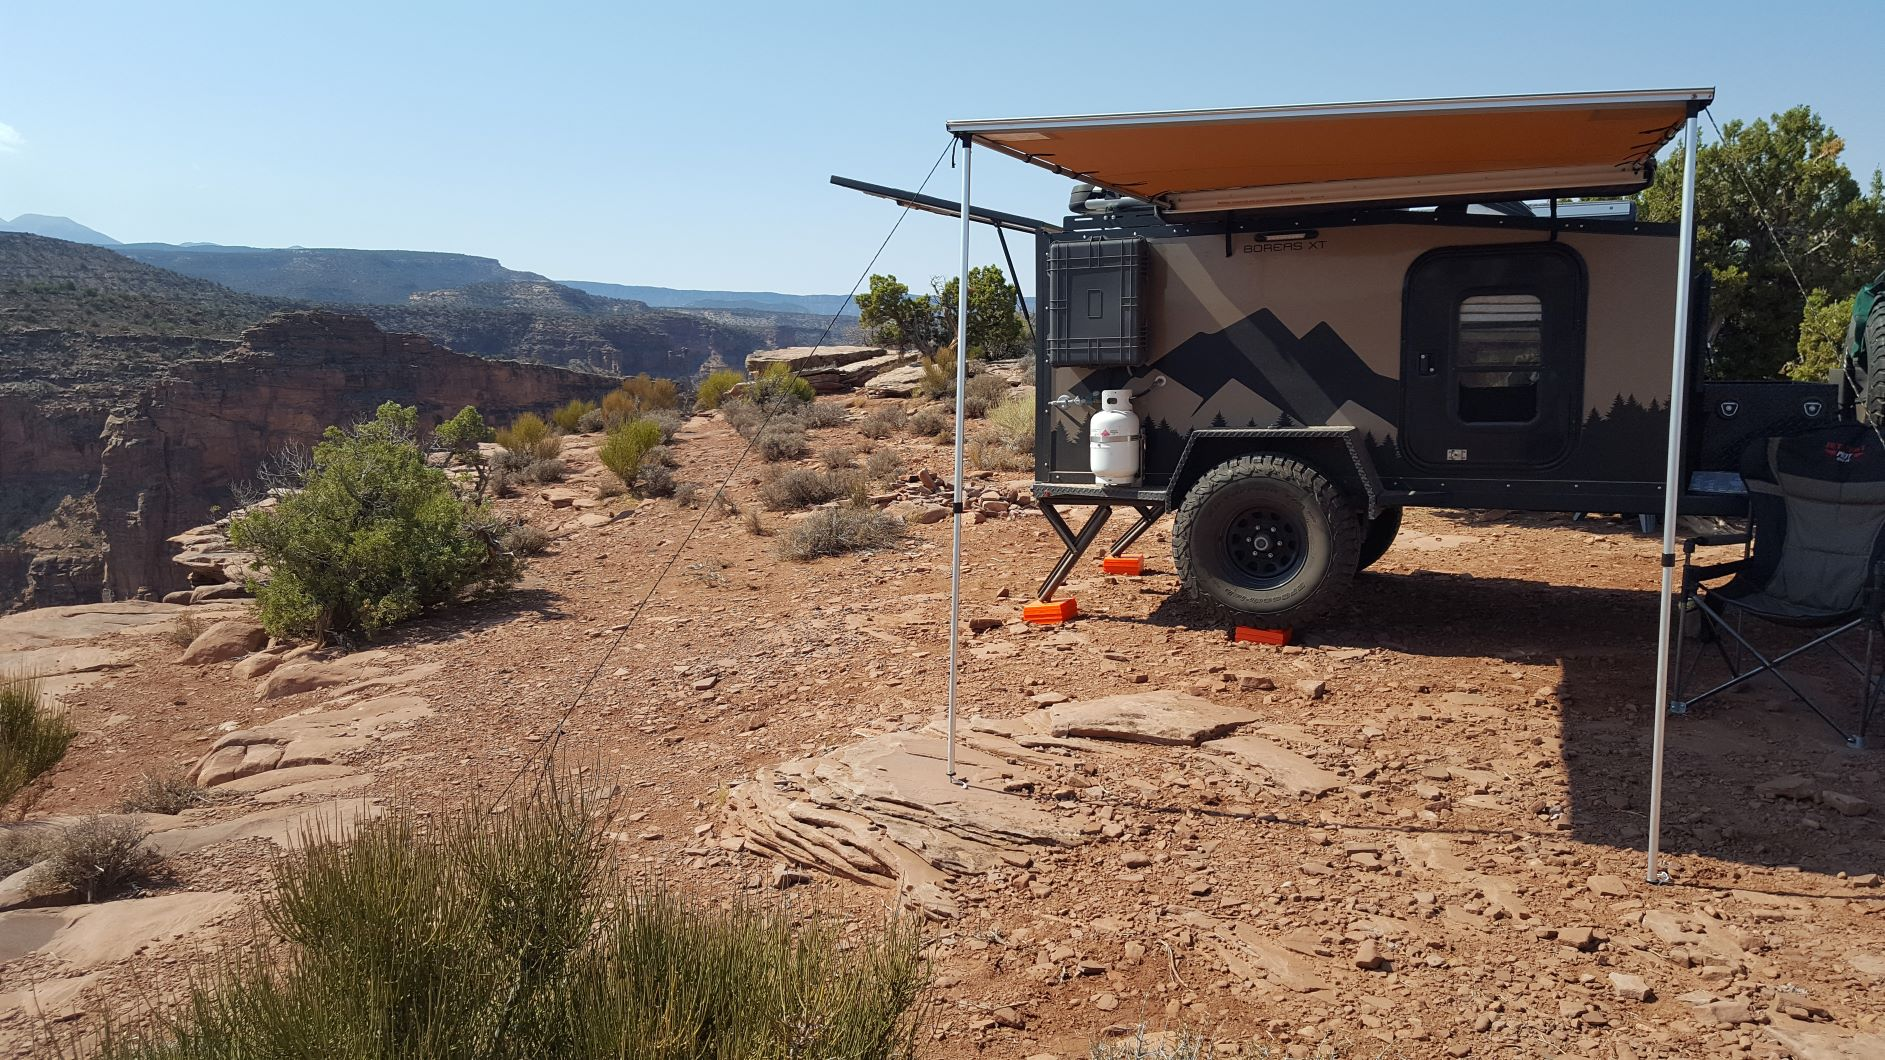 20200923_F_Dolores River Overlook Camp.jpg